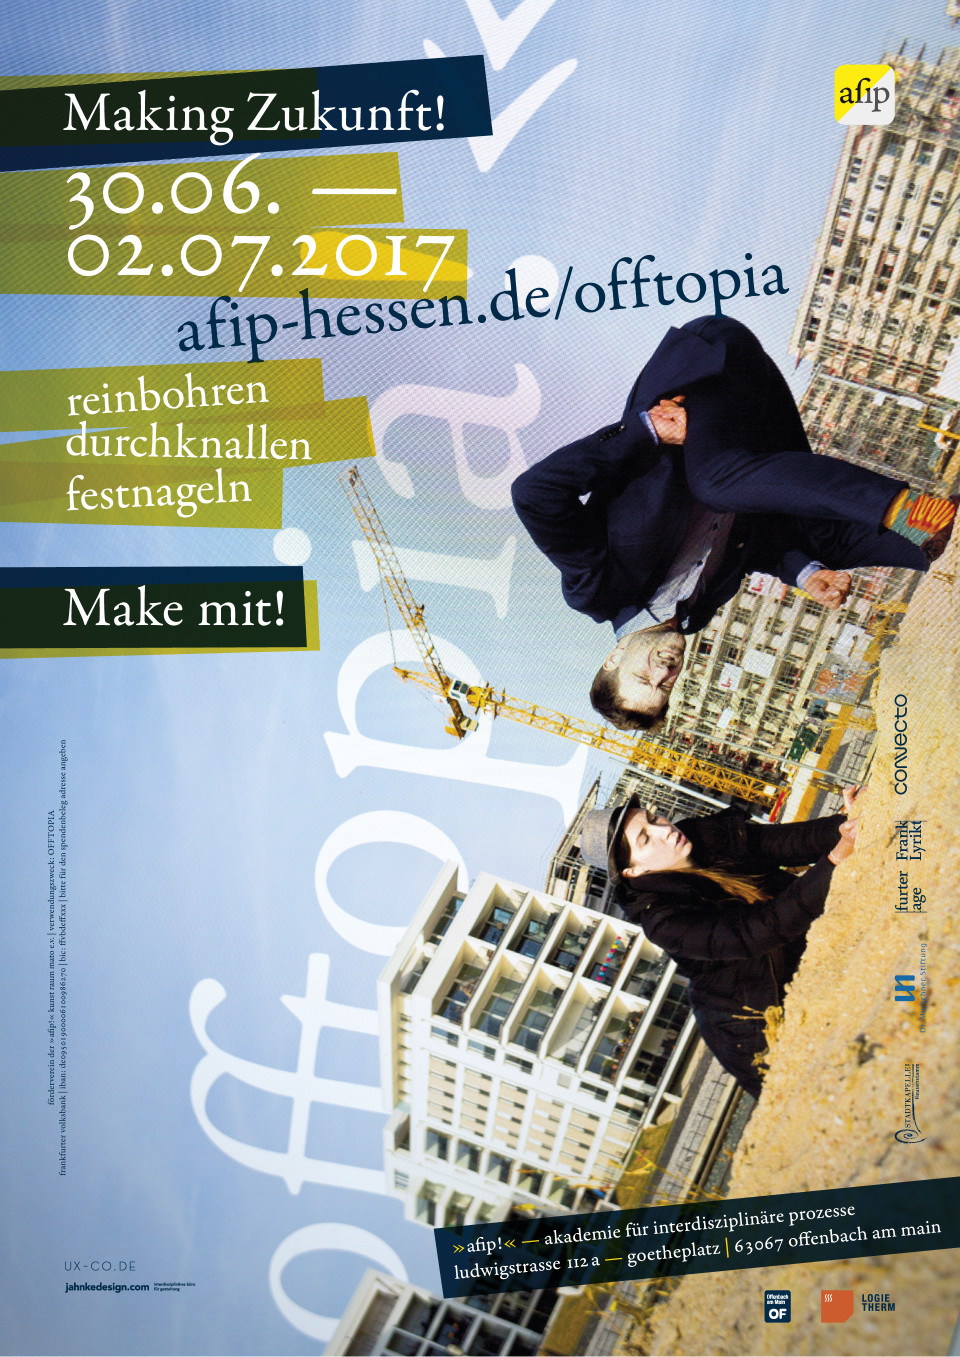 Offtopia making zukunft offenbach for Lutz jahnke